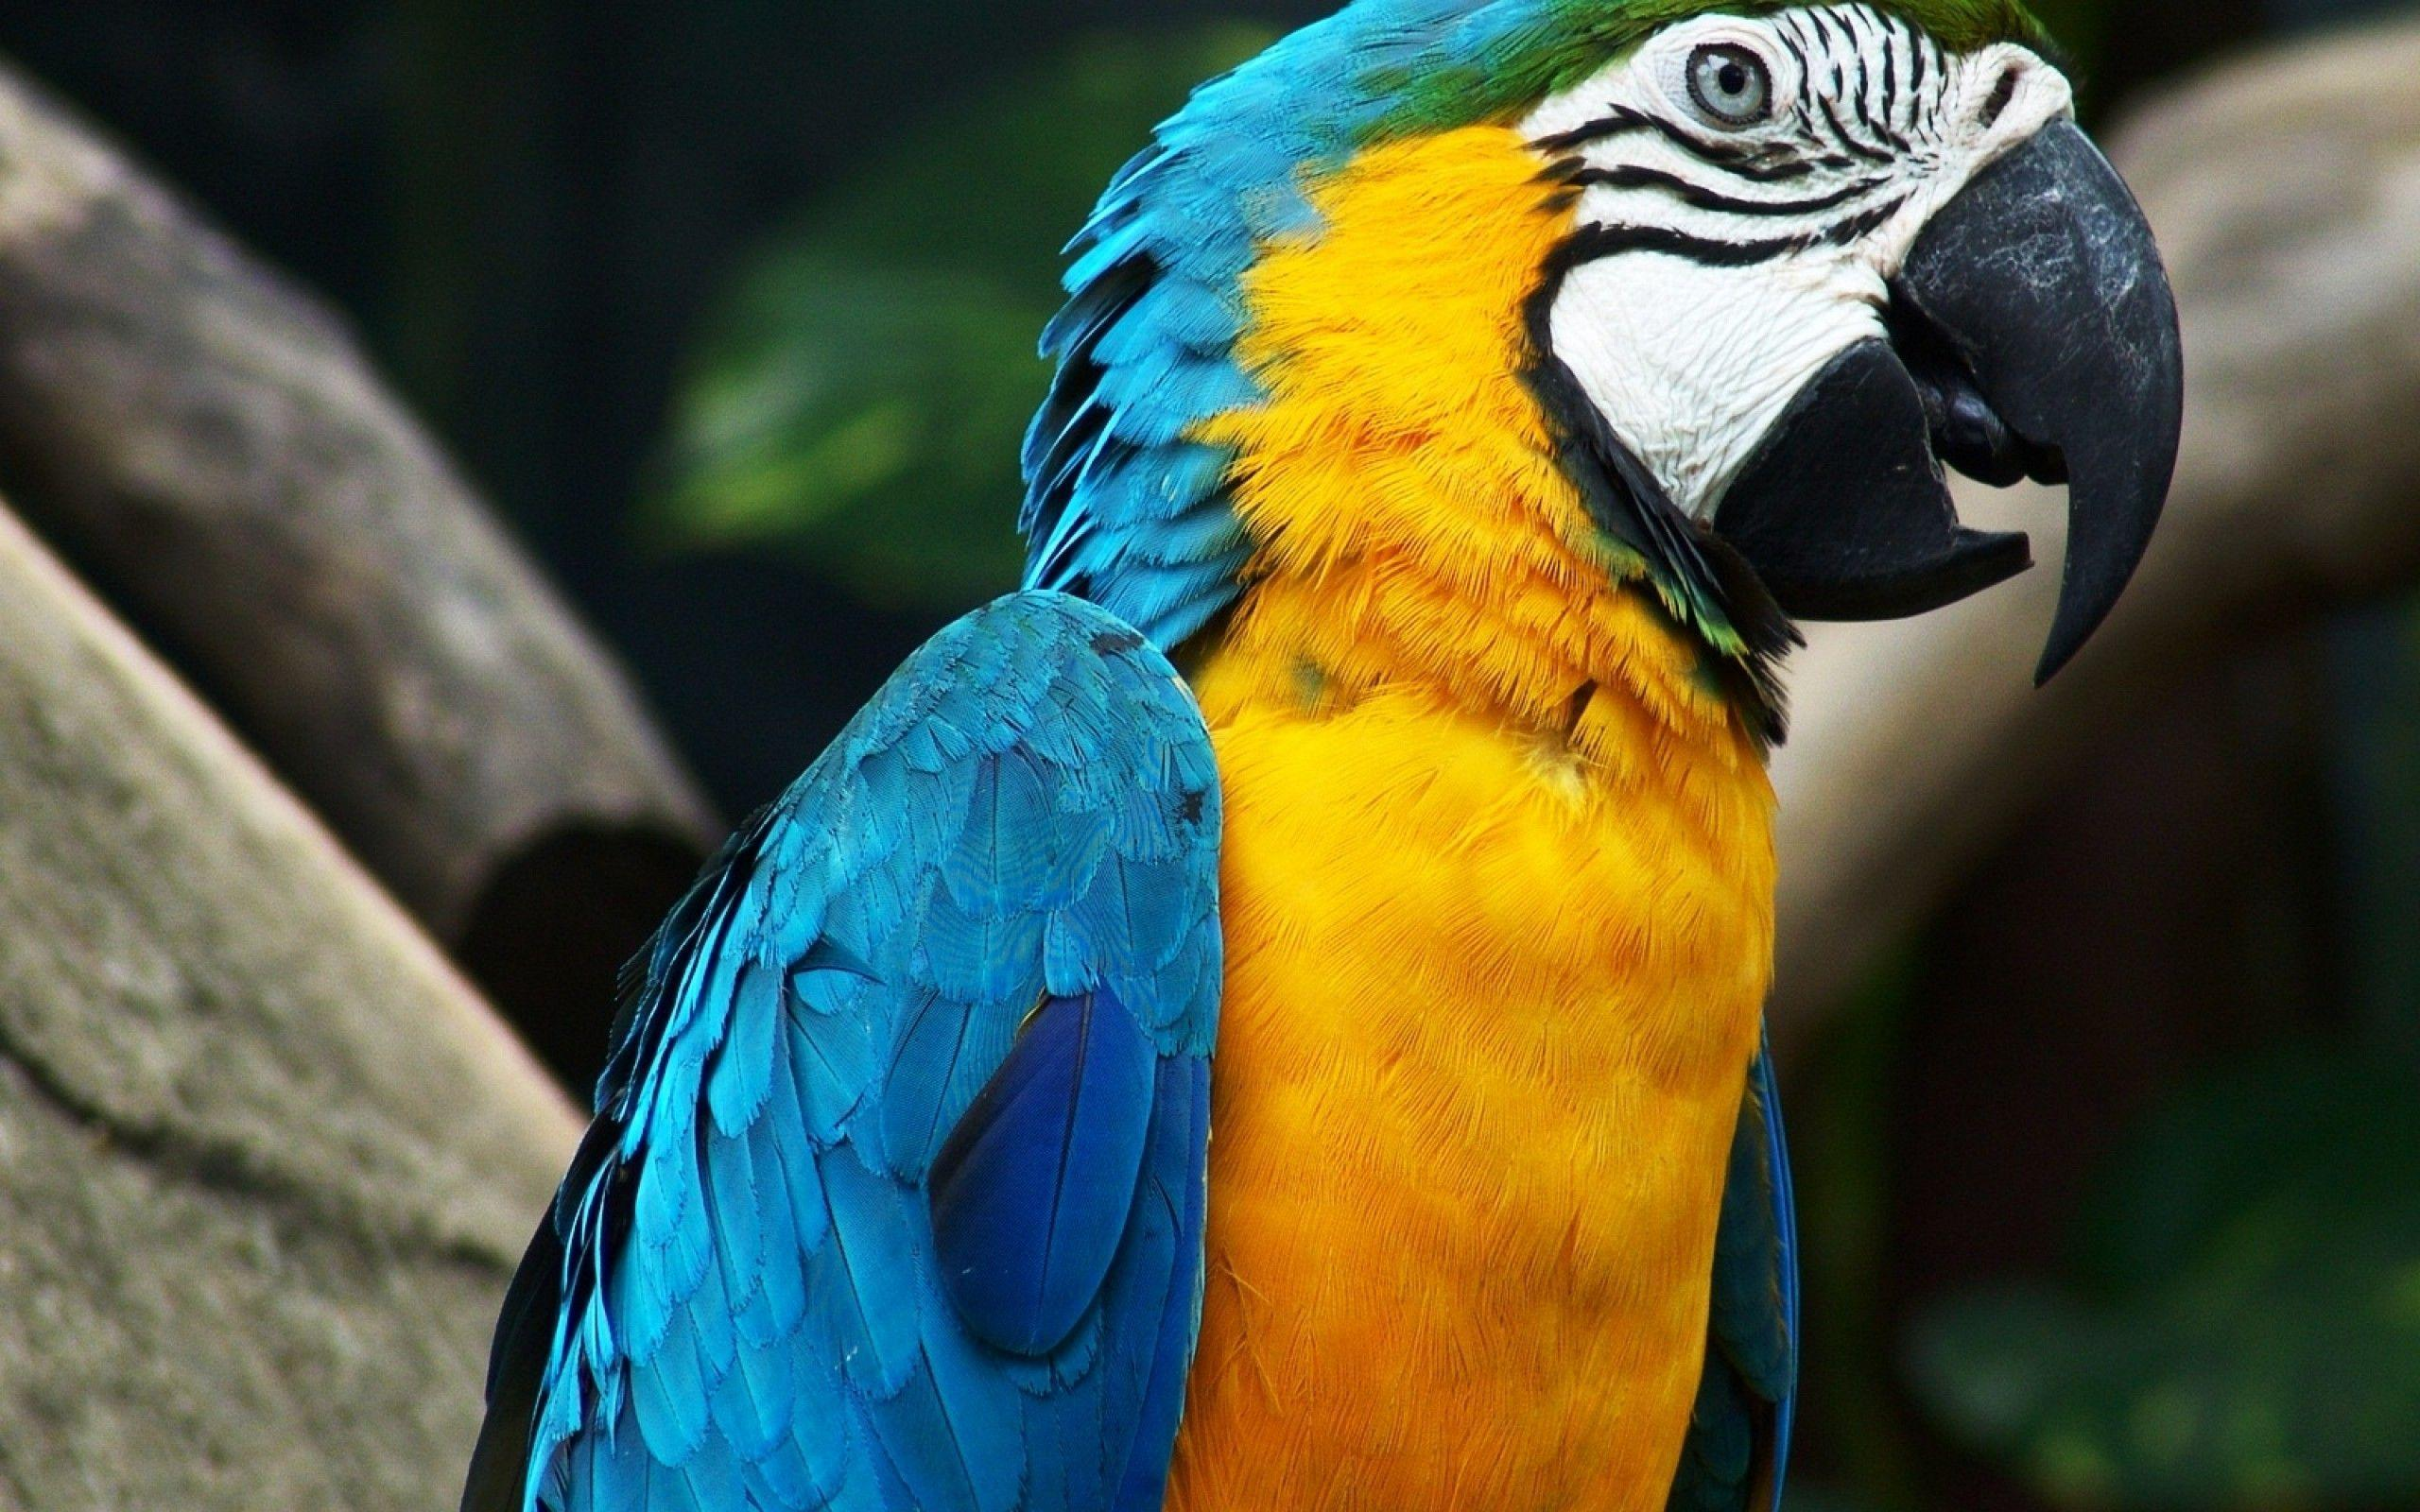 Blue-yellow Macaw Parrot Wallpaper - Download Wallpaper Nature Free